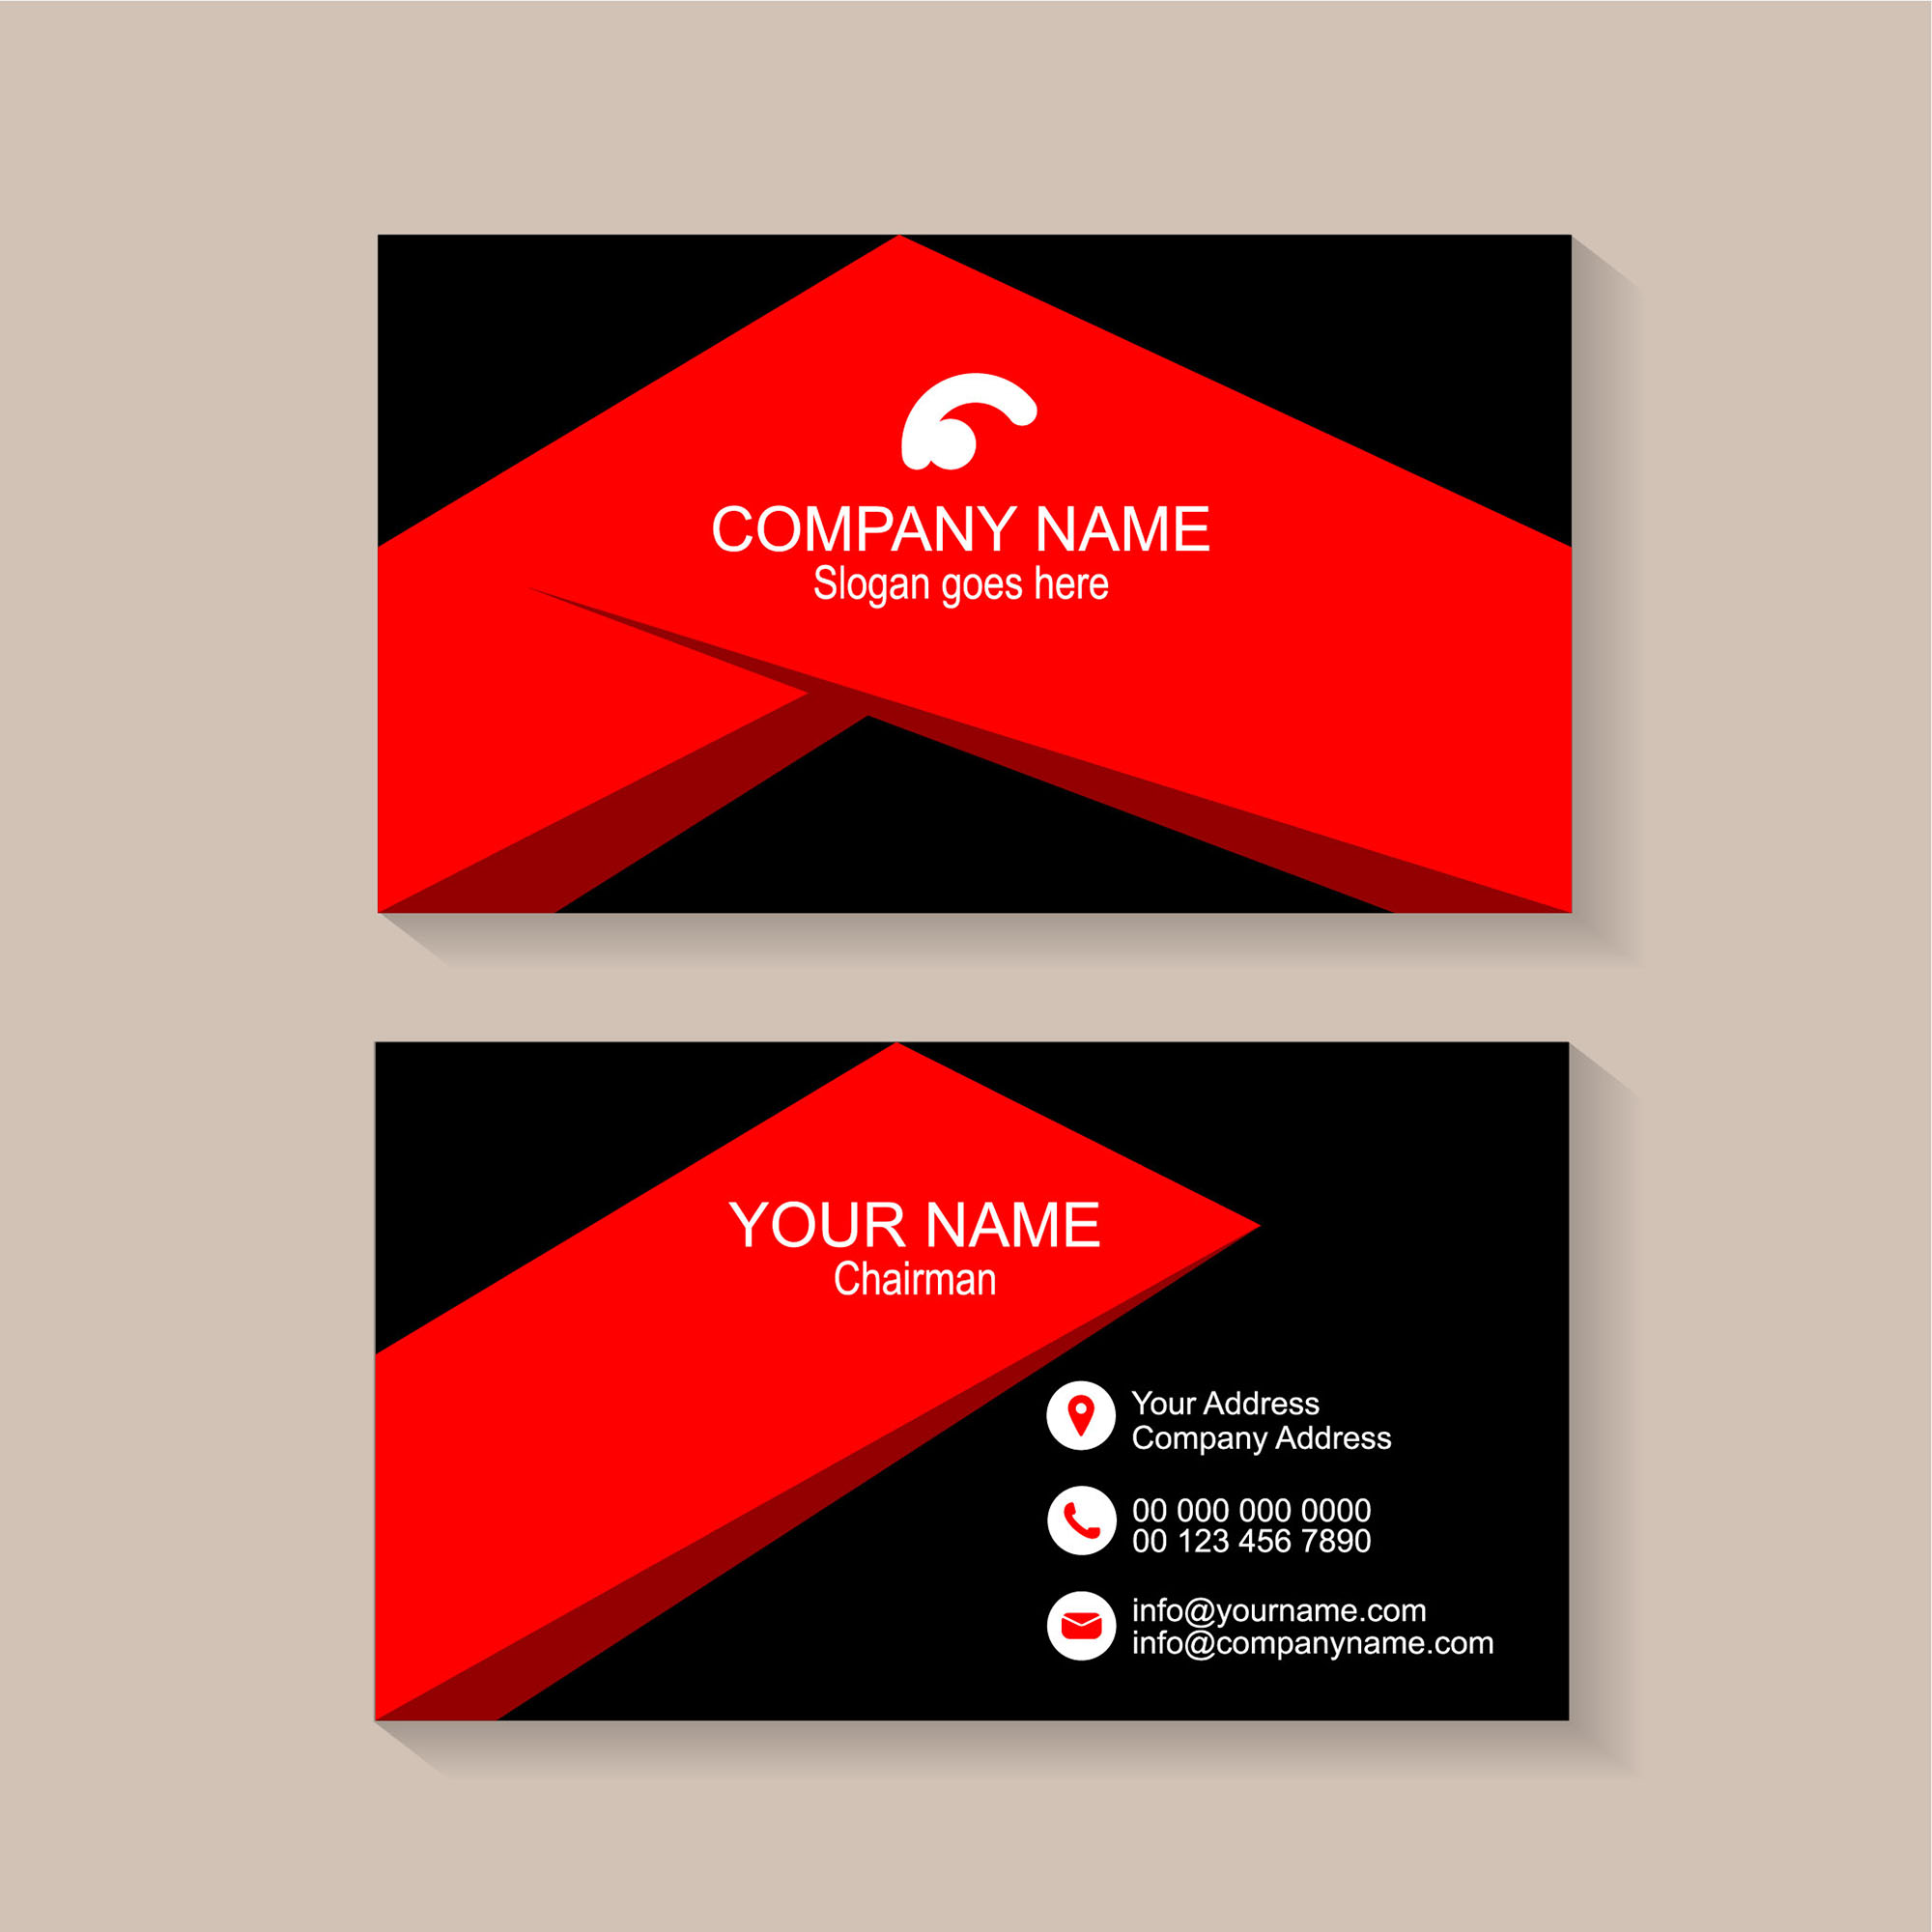 Business card template design free download wisxi business card business cards business card design business card template design templates accmission